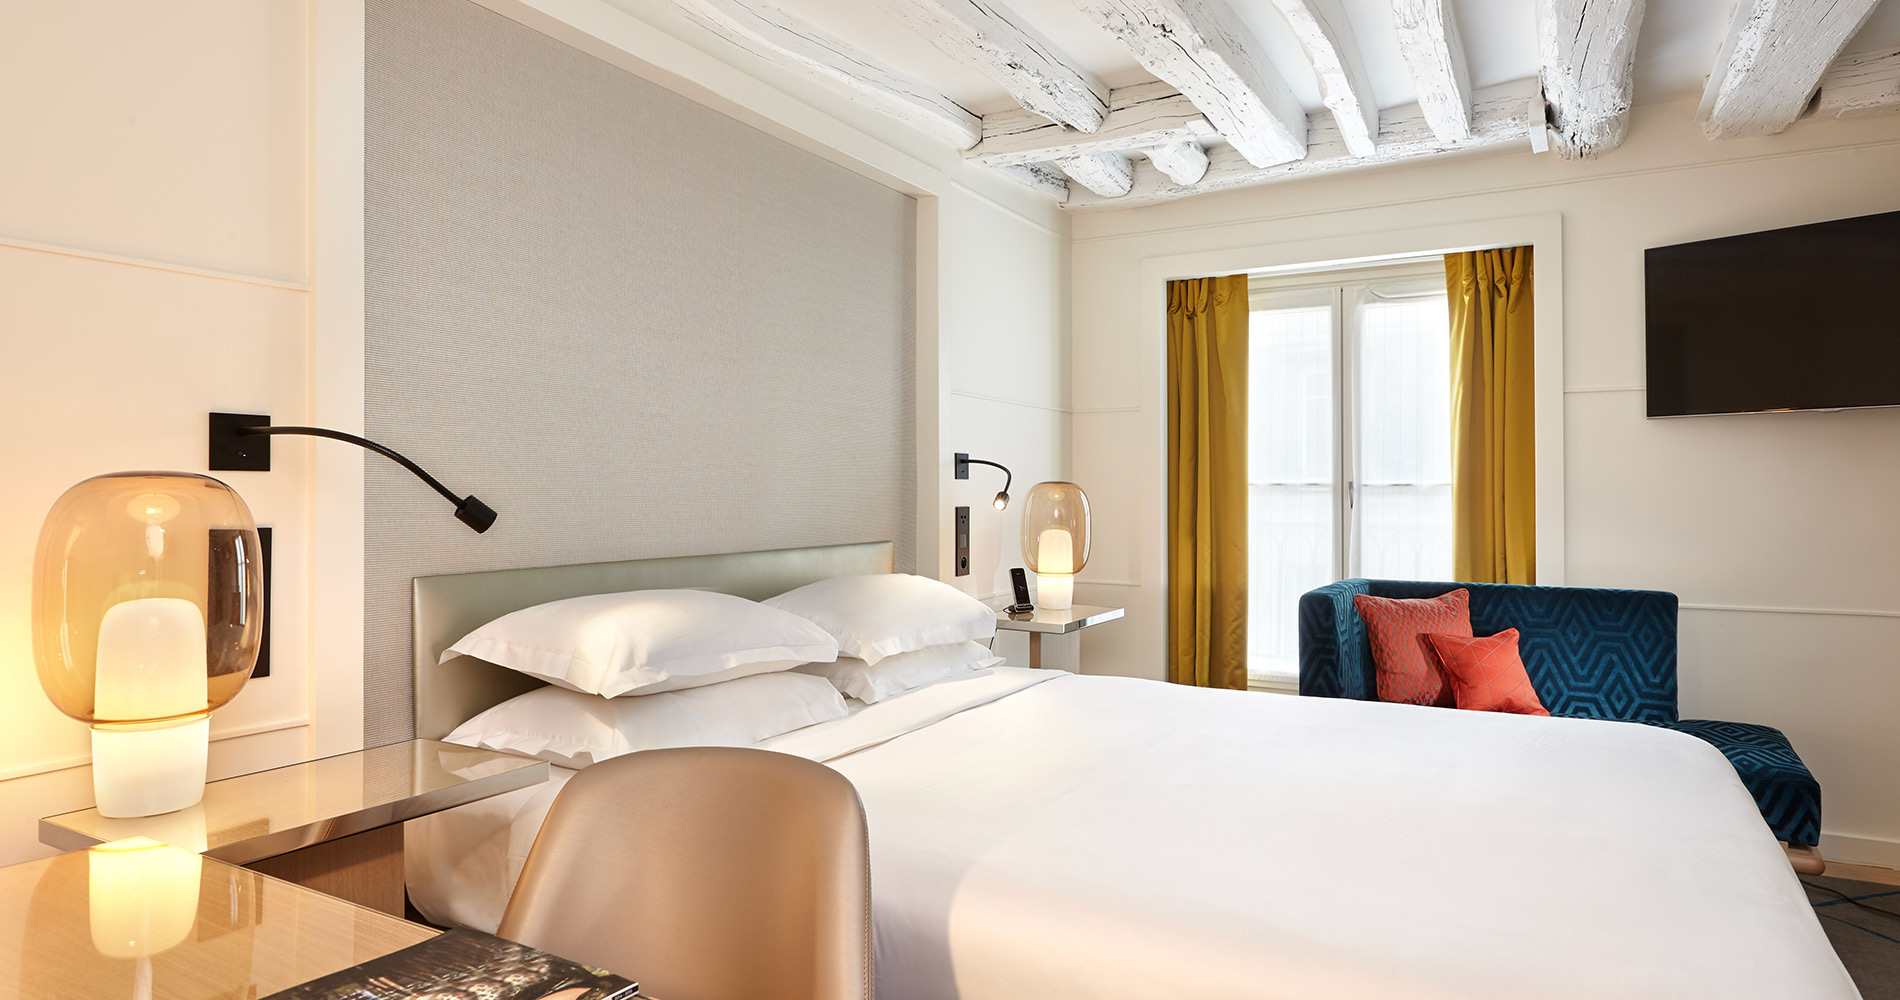 Charming property hotel Opéra Richepanse 4 star Paris France bedroom